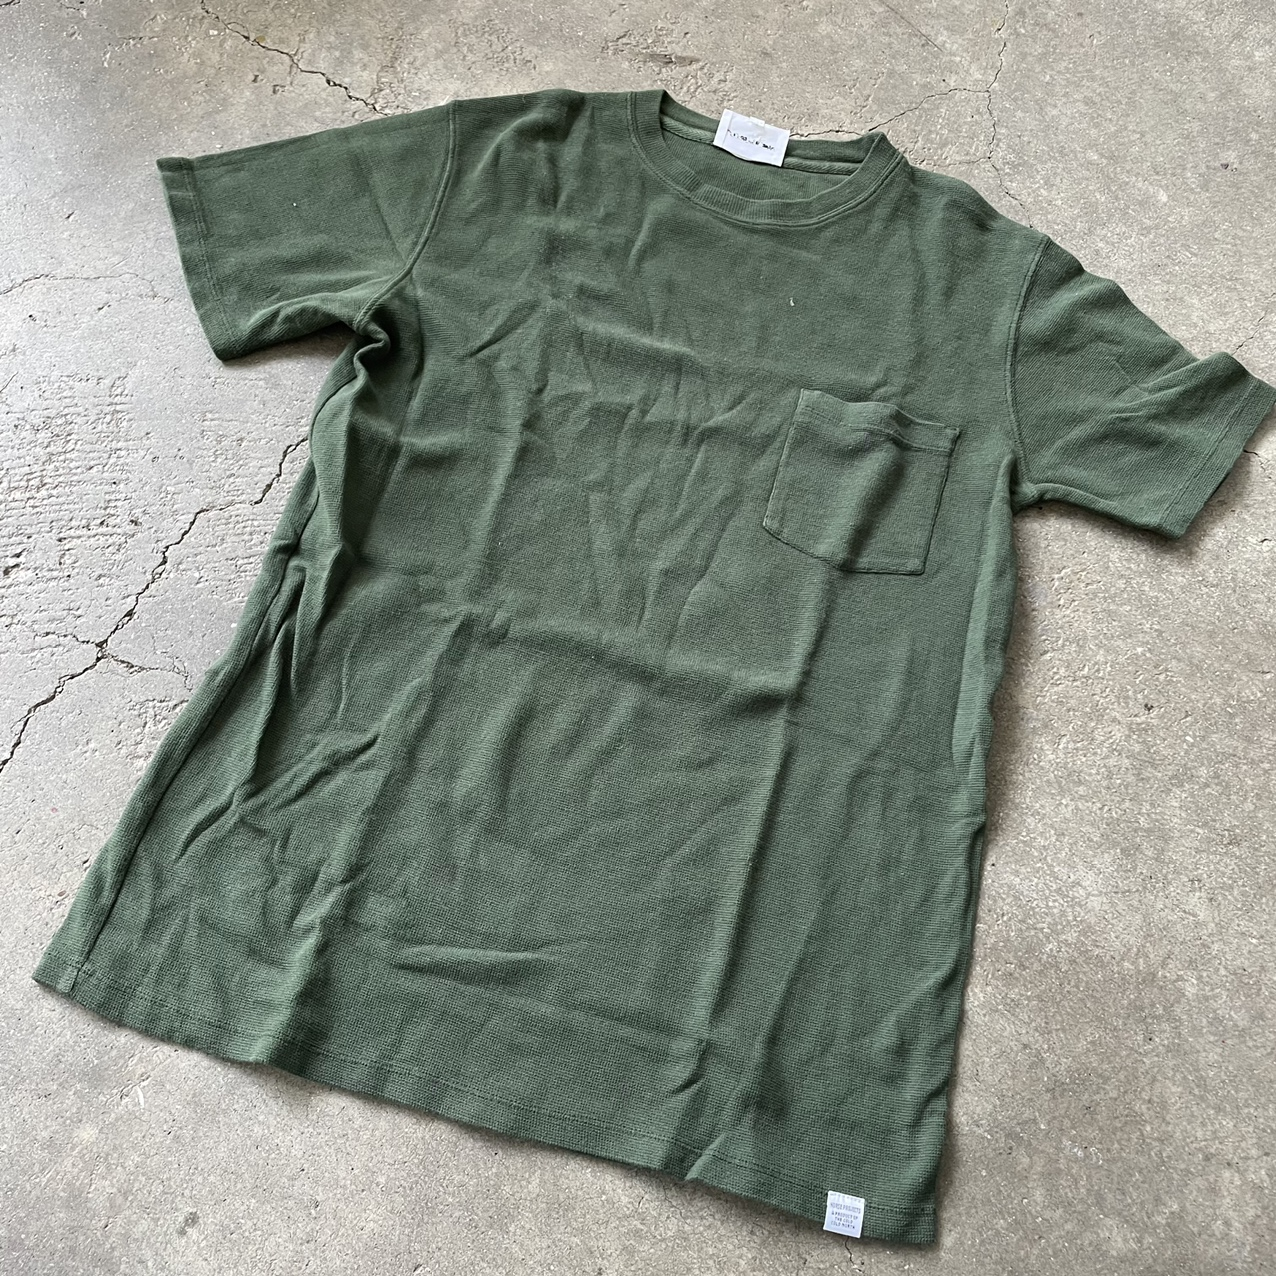 Product Image 1 - norse projects green pocket t-shirt